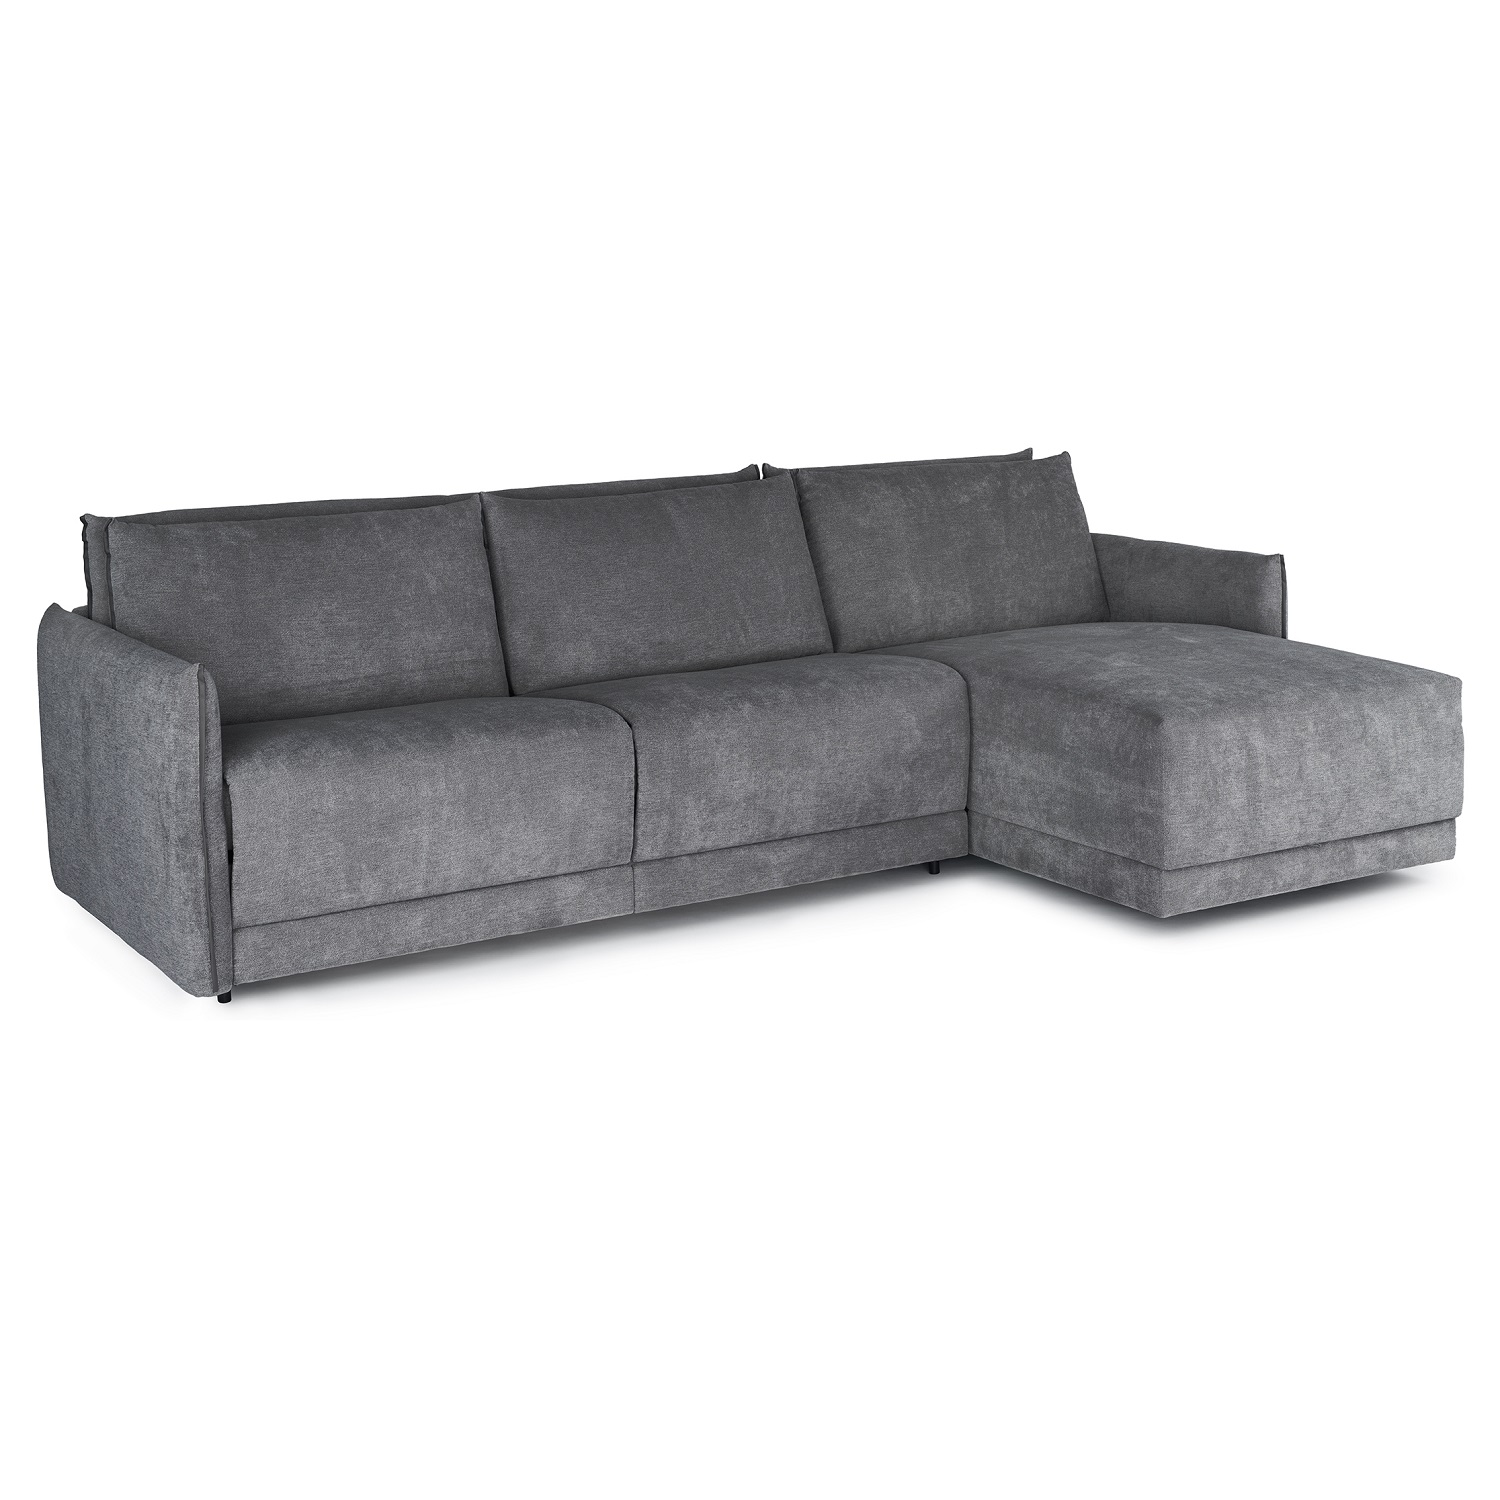 Luxx Sofa Sleeper